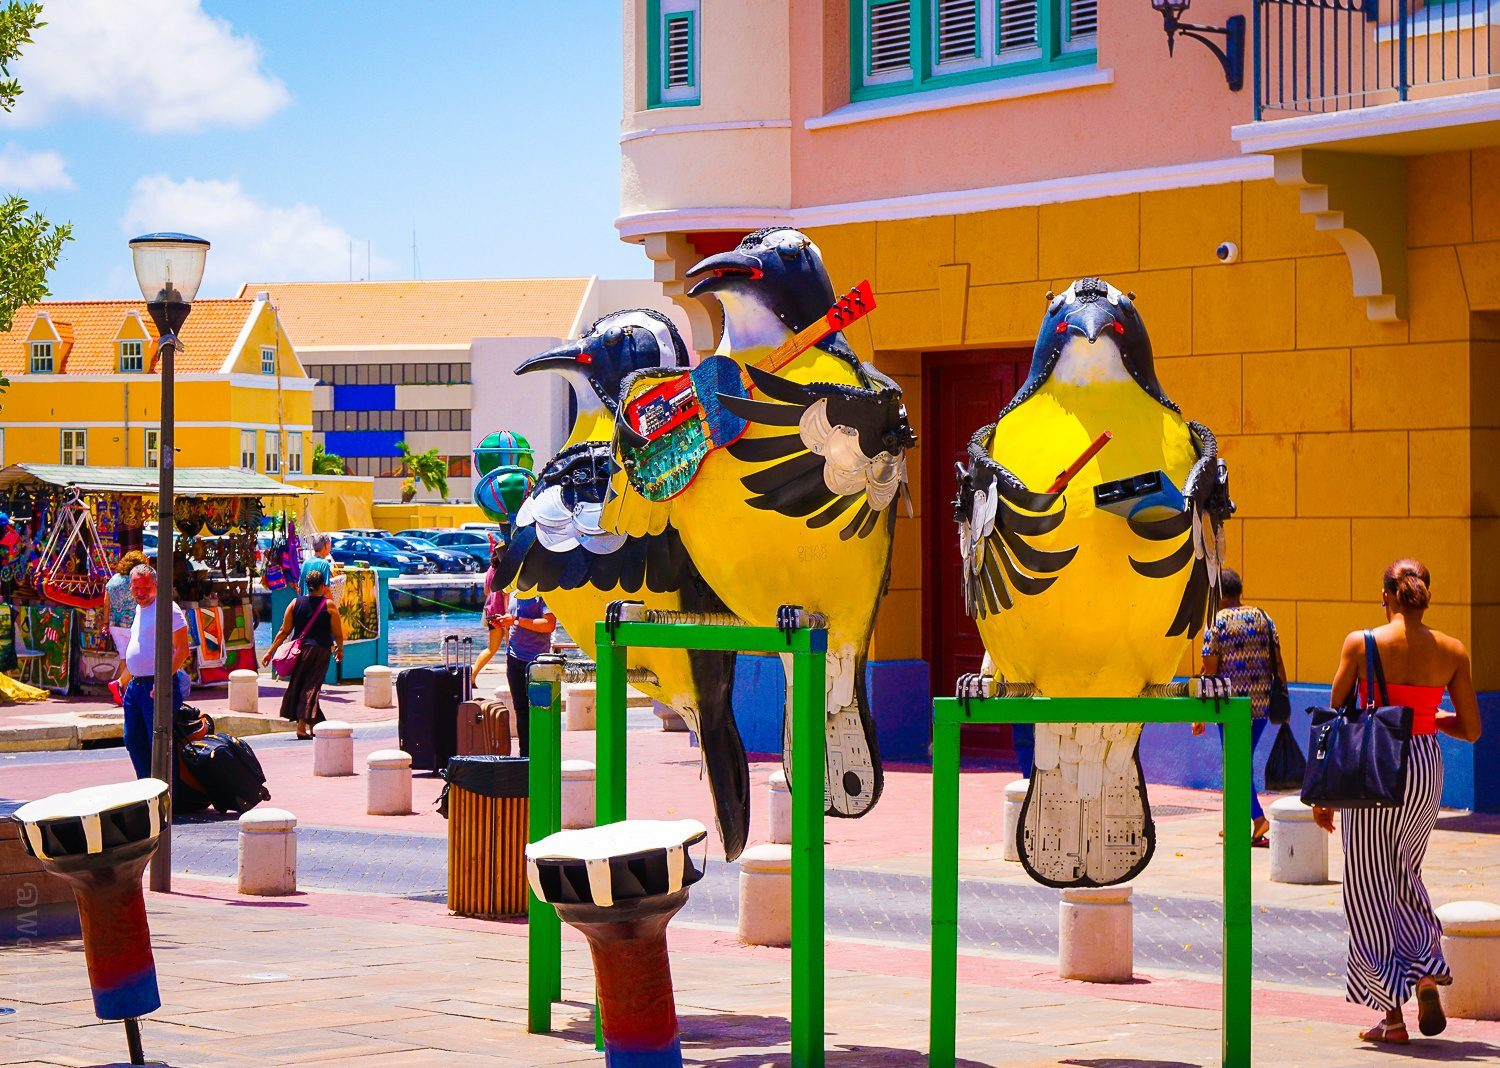 Bird sculptures in Willemstad.